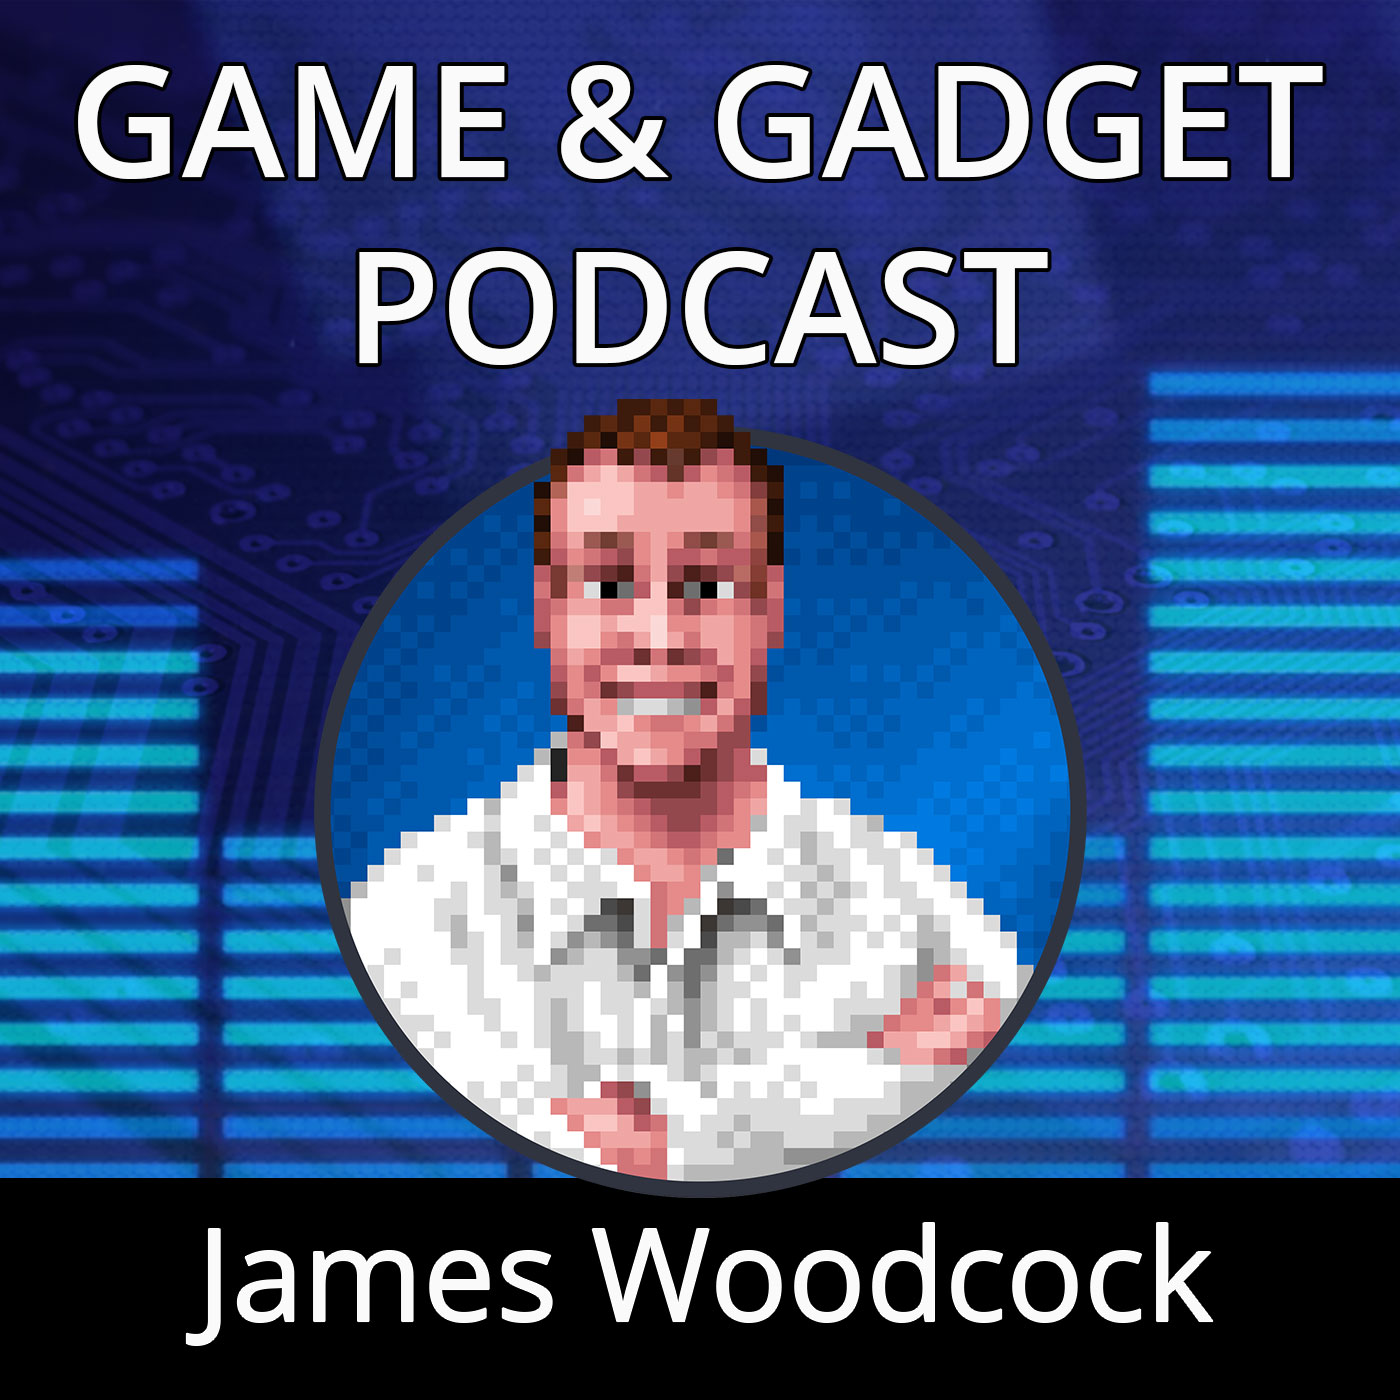 Game & Gadget Podcast